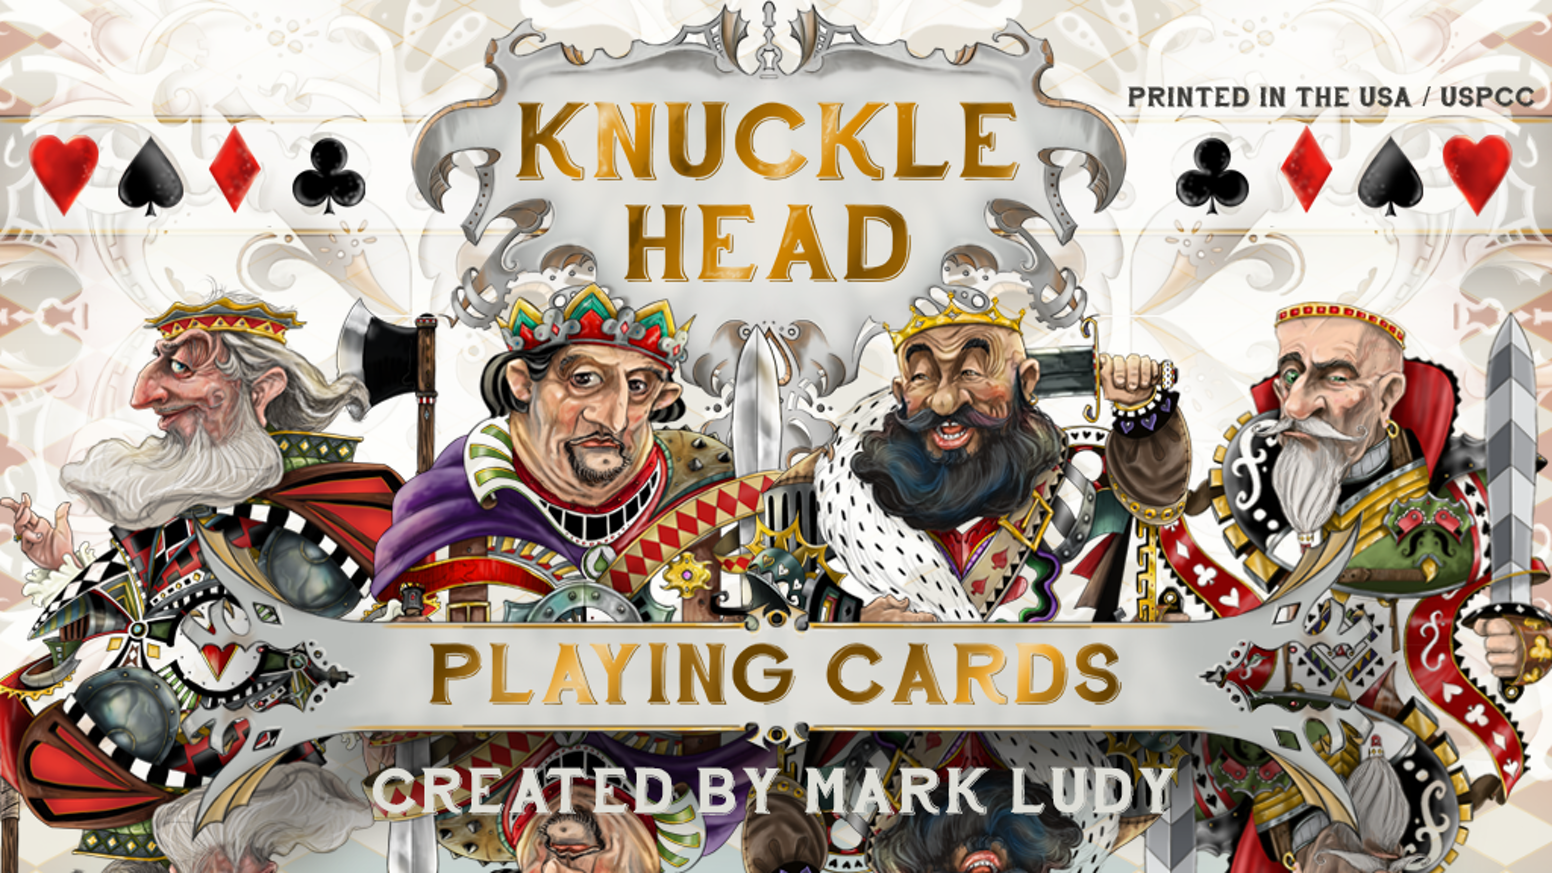 Knuckle Head Playing Cards